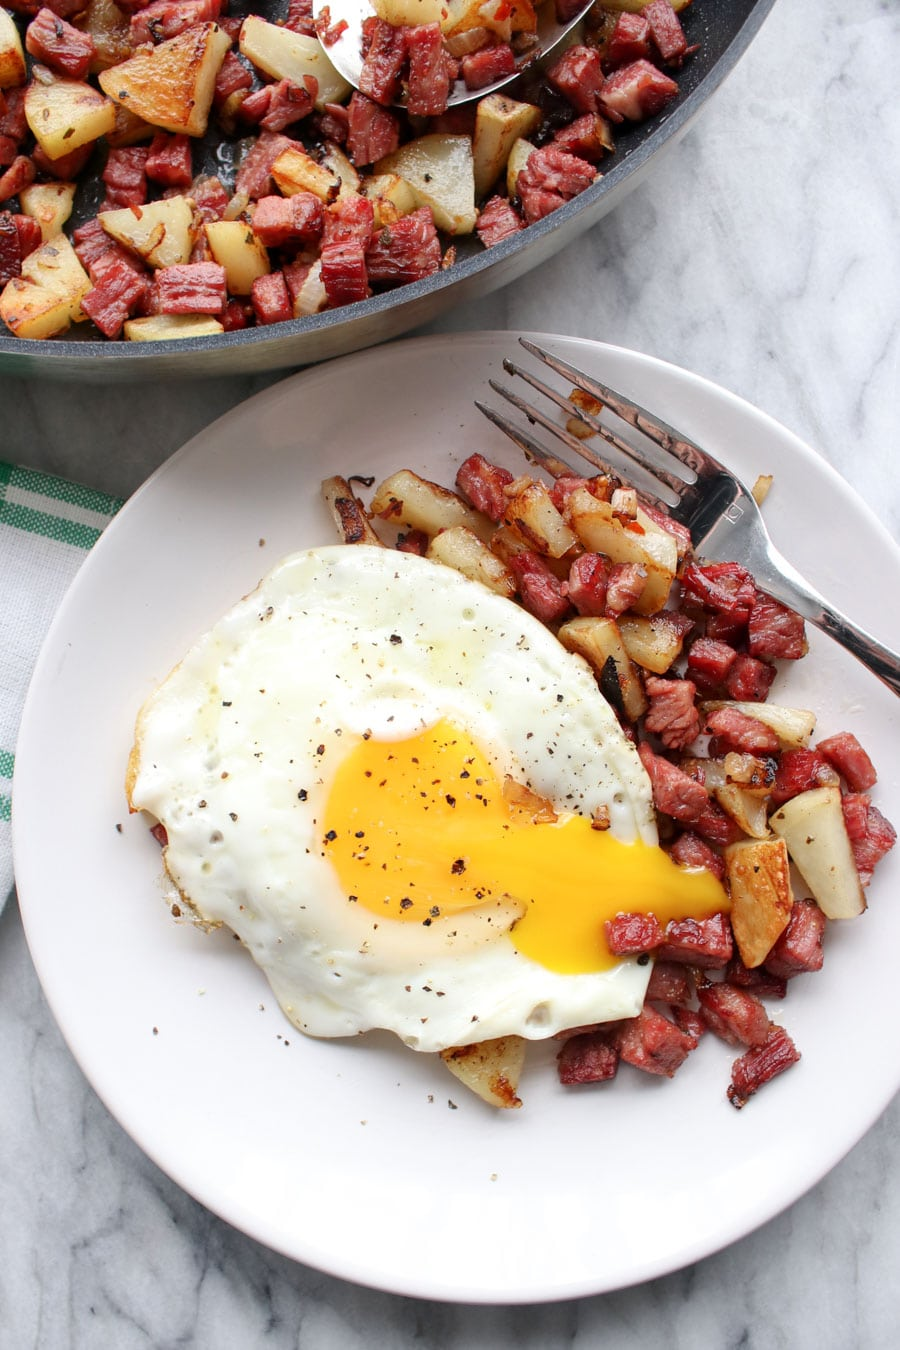 Plate of hash with a broken sunny side up egg on top